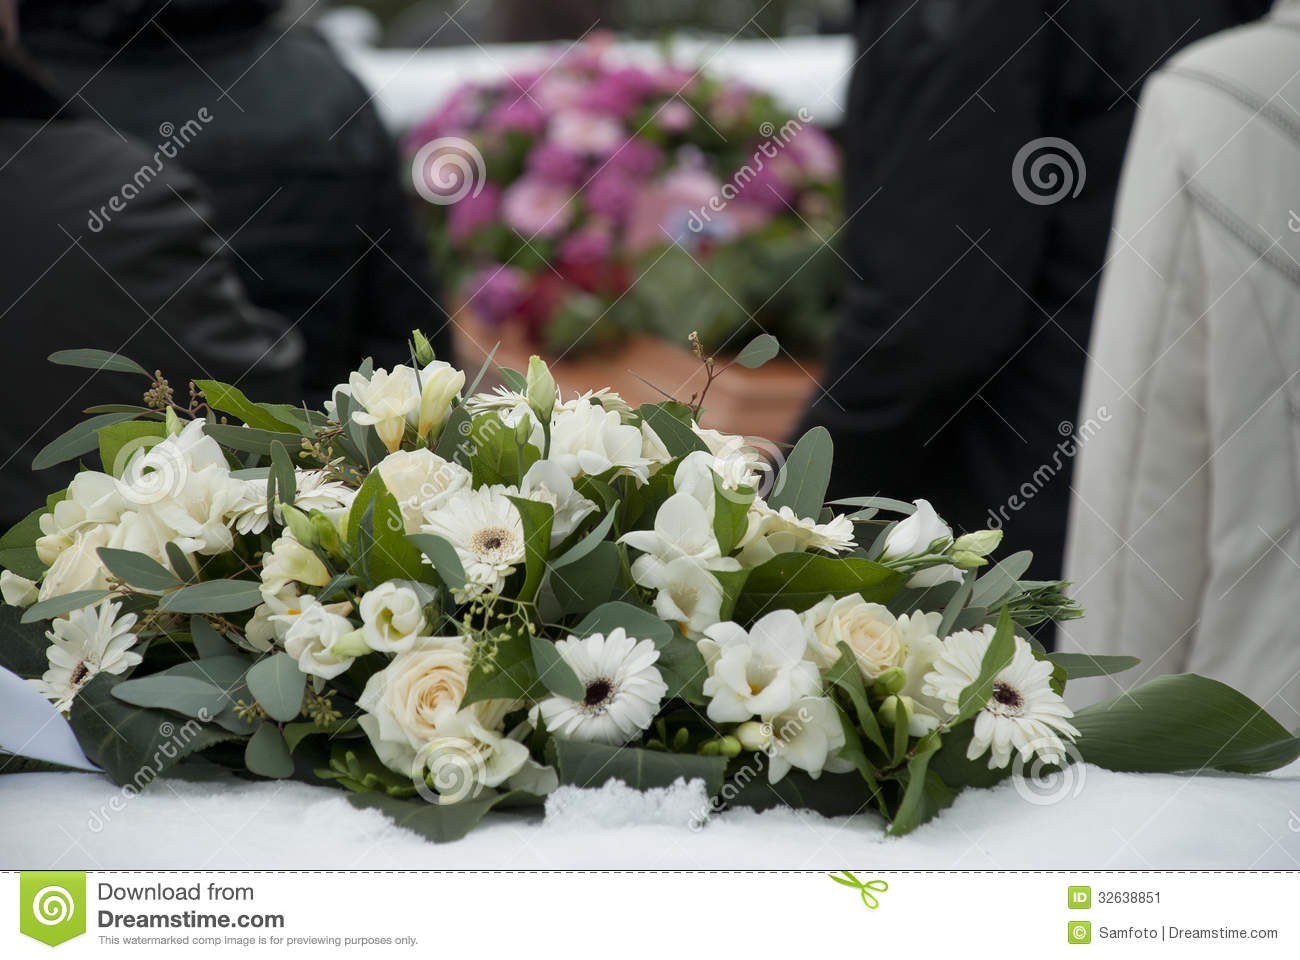 White funeral flowers in the snow before a caket stock image image white funeral flowers in the snow before a caket izmirmasajfo